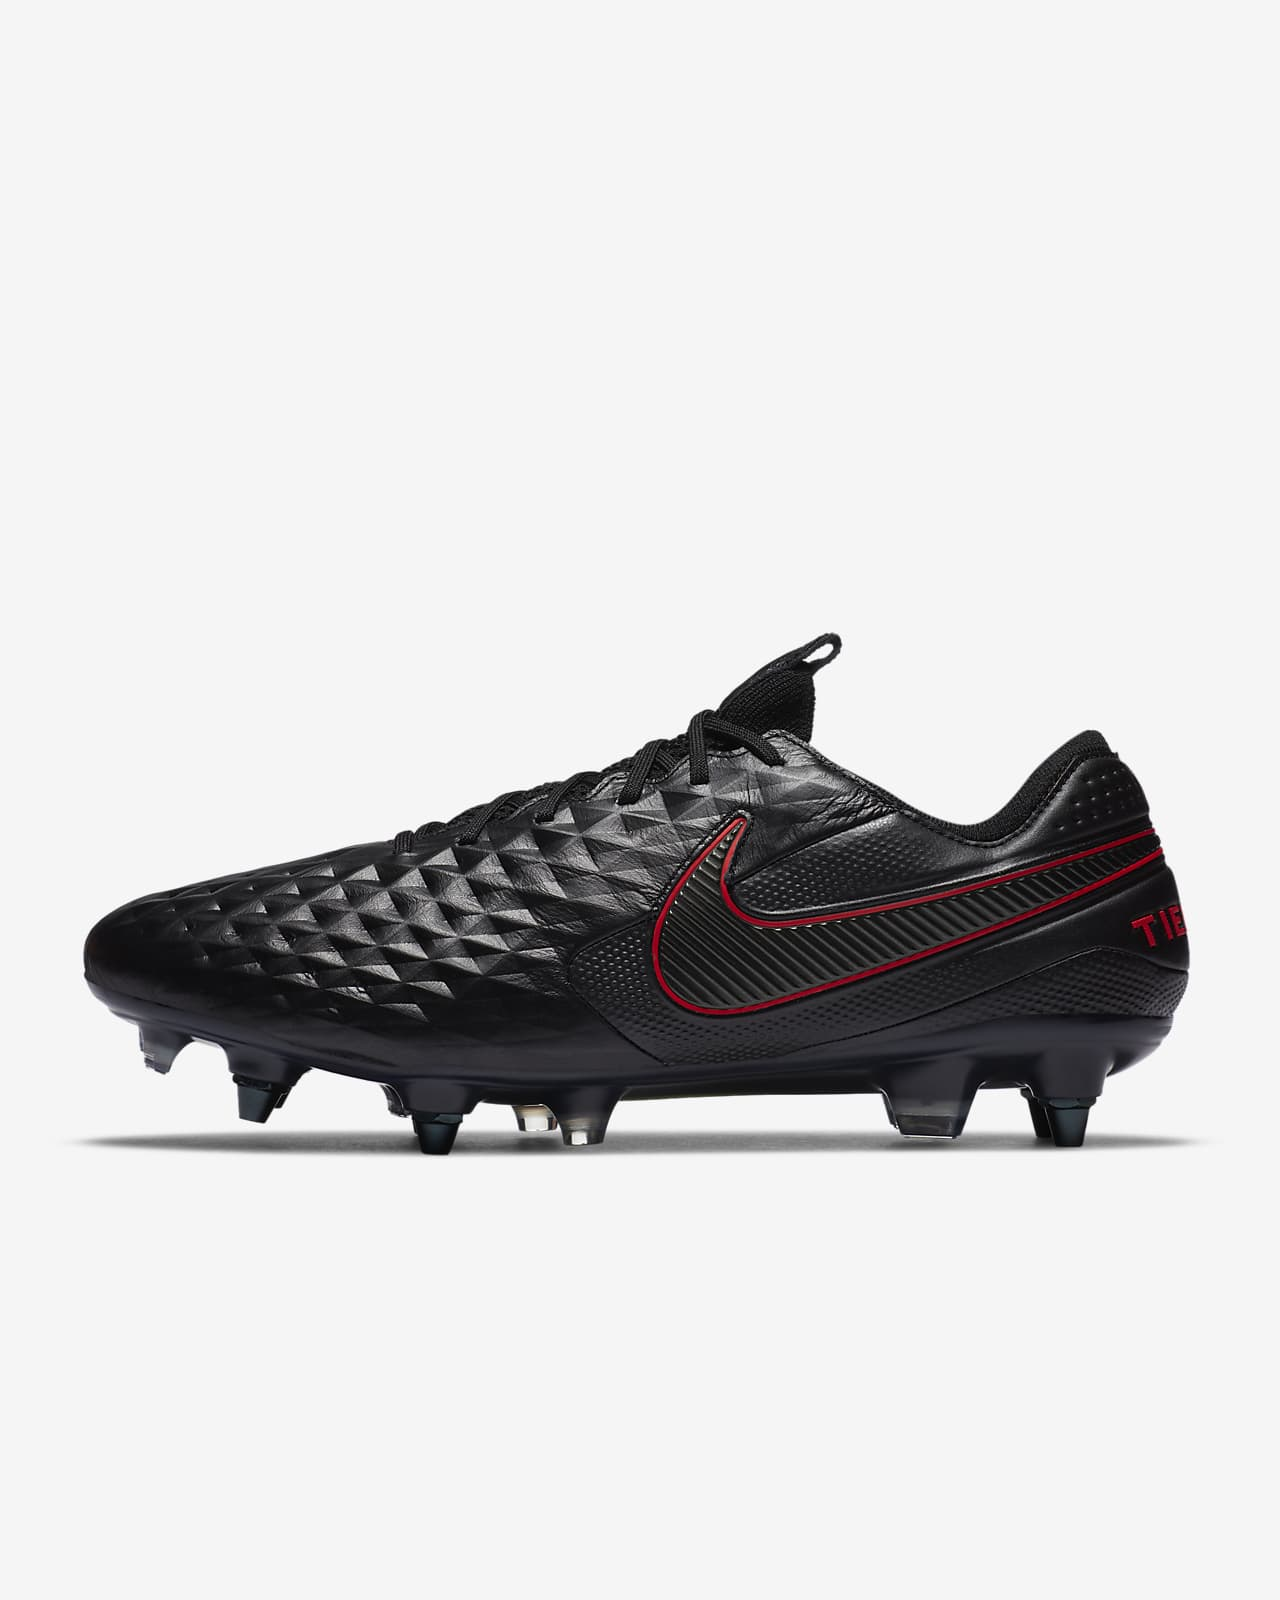 Nike Tiempo Legend 8 Elite SG-PRO Anti-Clog Traction Soft-Ground Football Boots